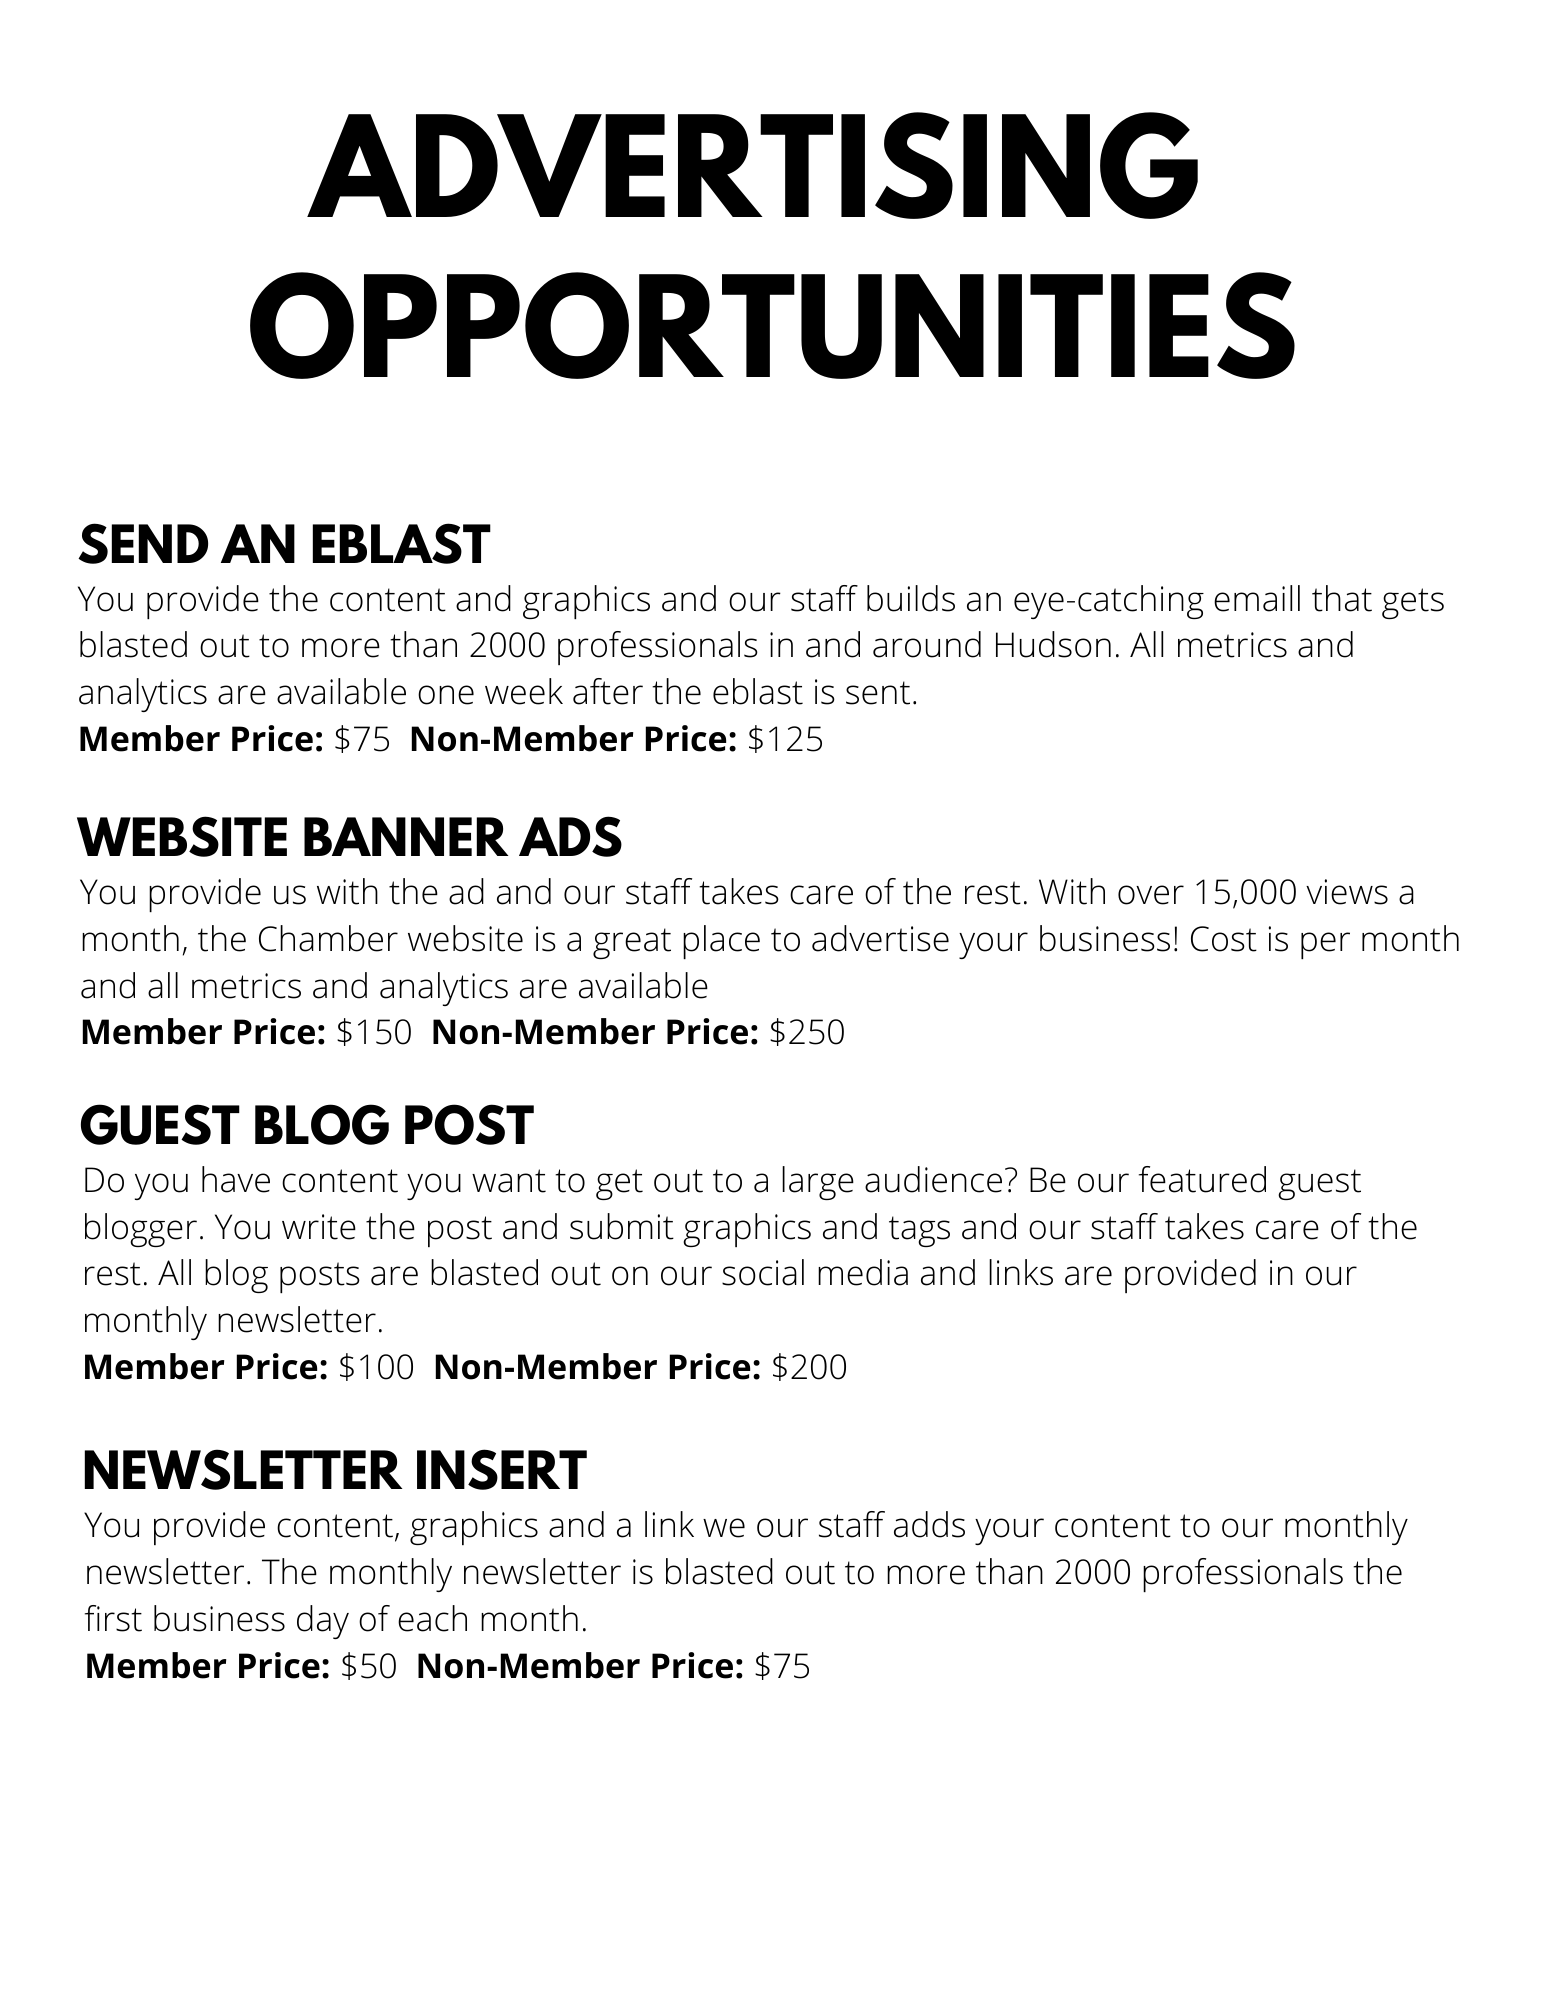 Ad-opportunities.png